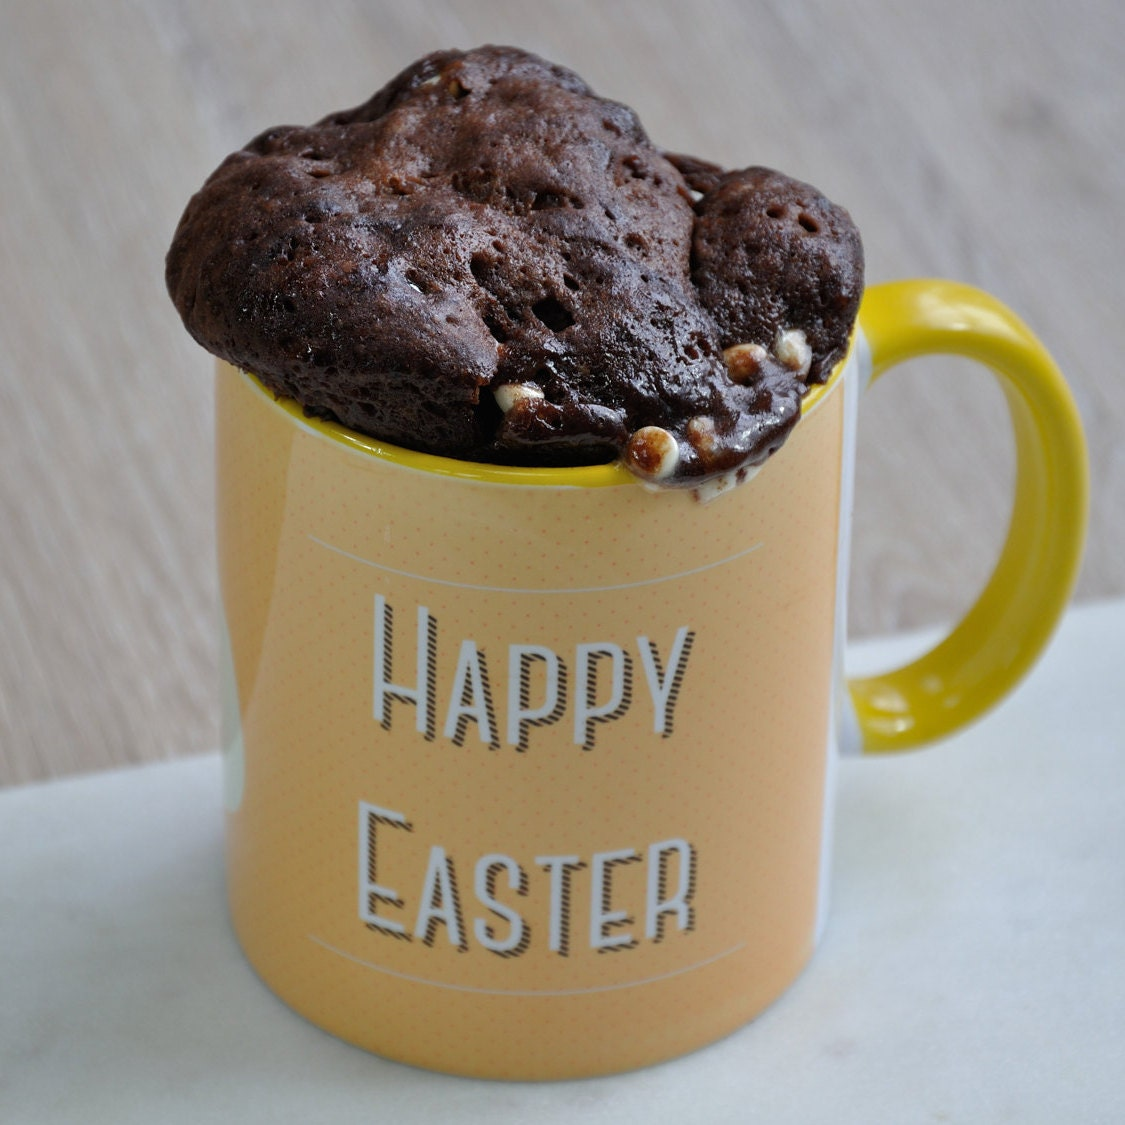 Easter bunny easter gifts easter egg happy easter easter gift easter bunny easter gifts easter egg happy easter easter gift easter for him easter for her easter cake easter mug easter choc negle Choice Image